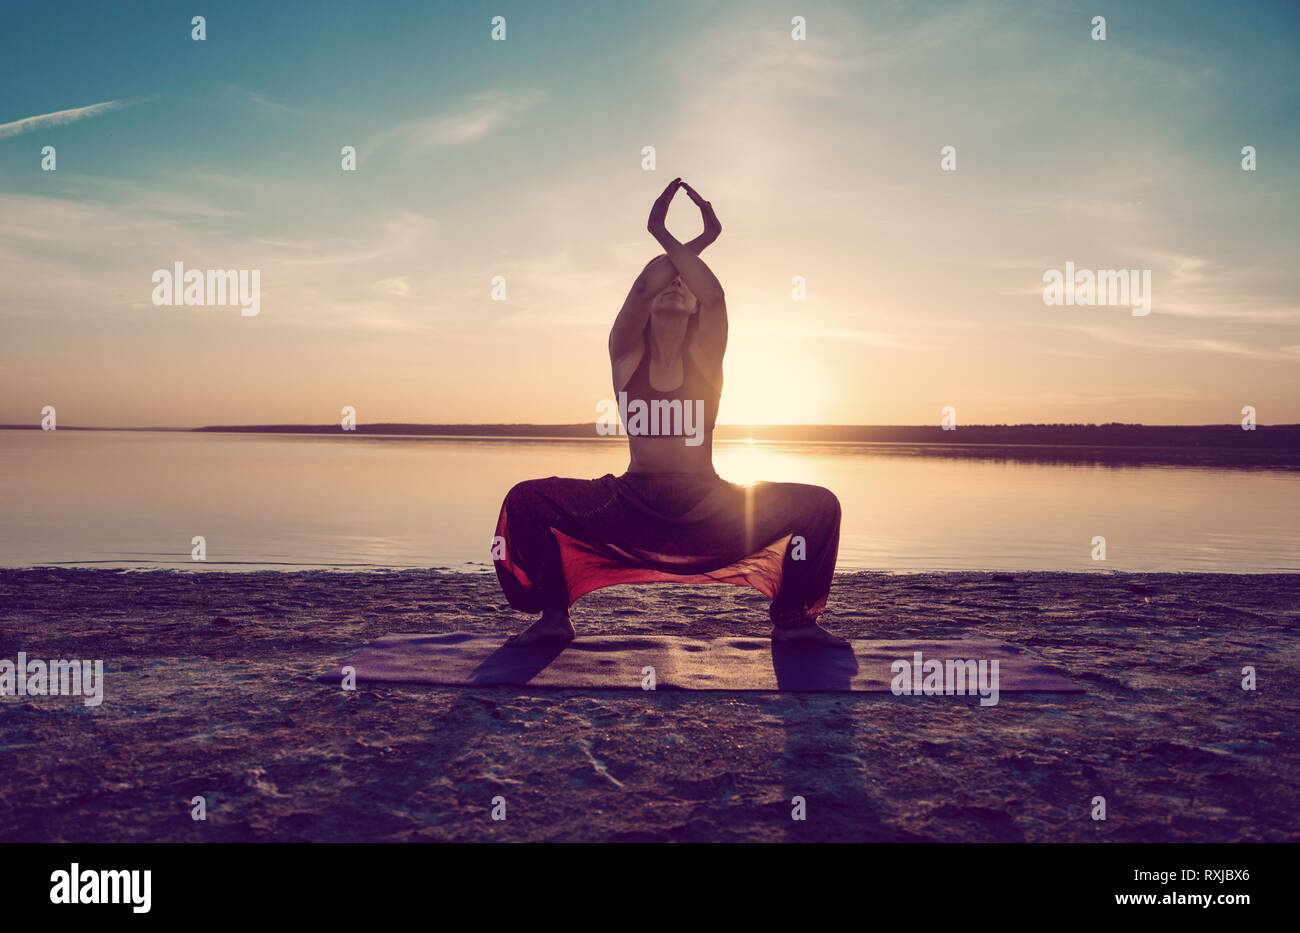 yoga woman on the beach at sunset. Stock Photo